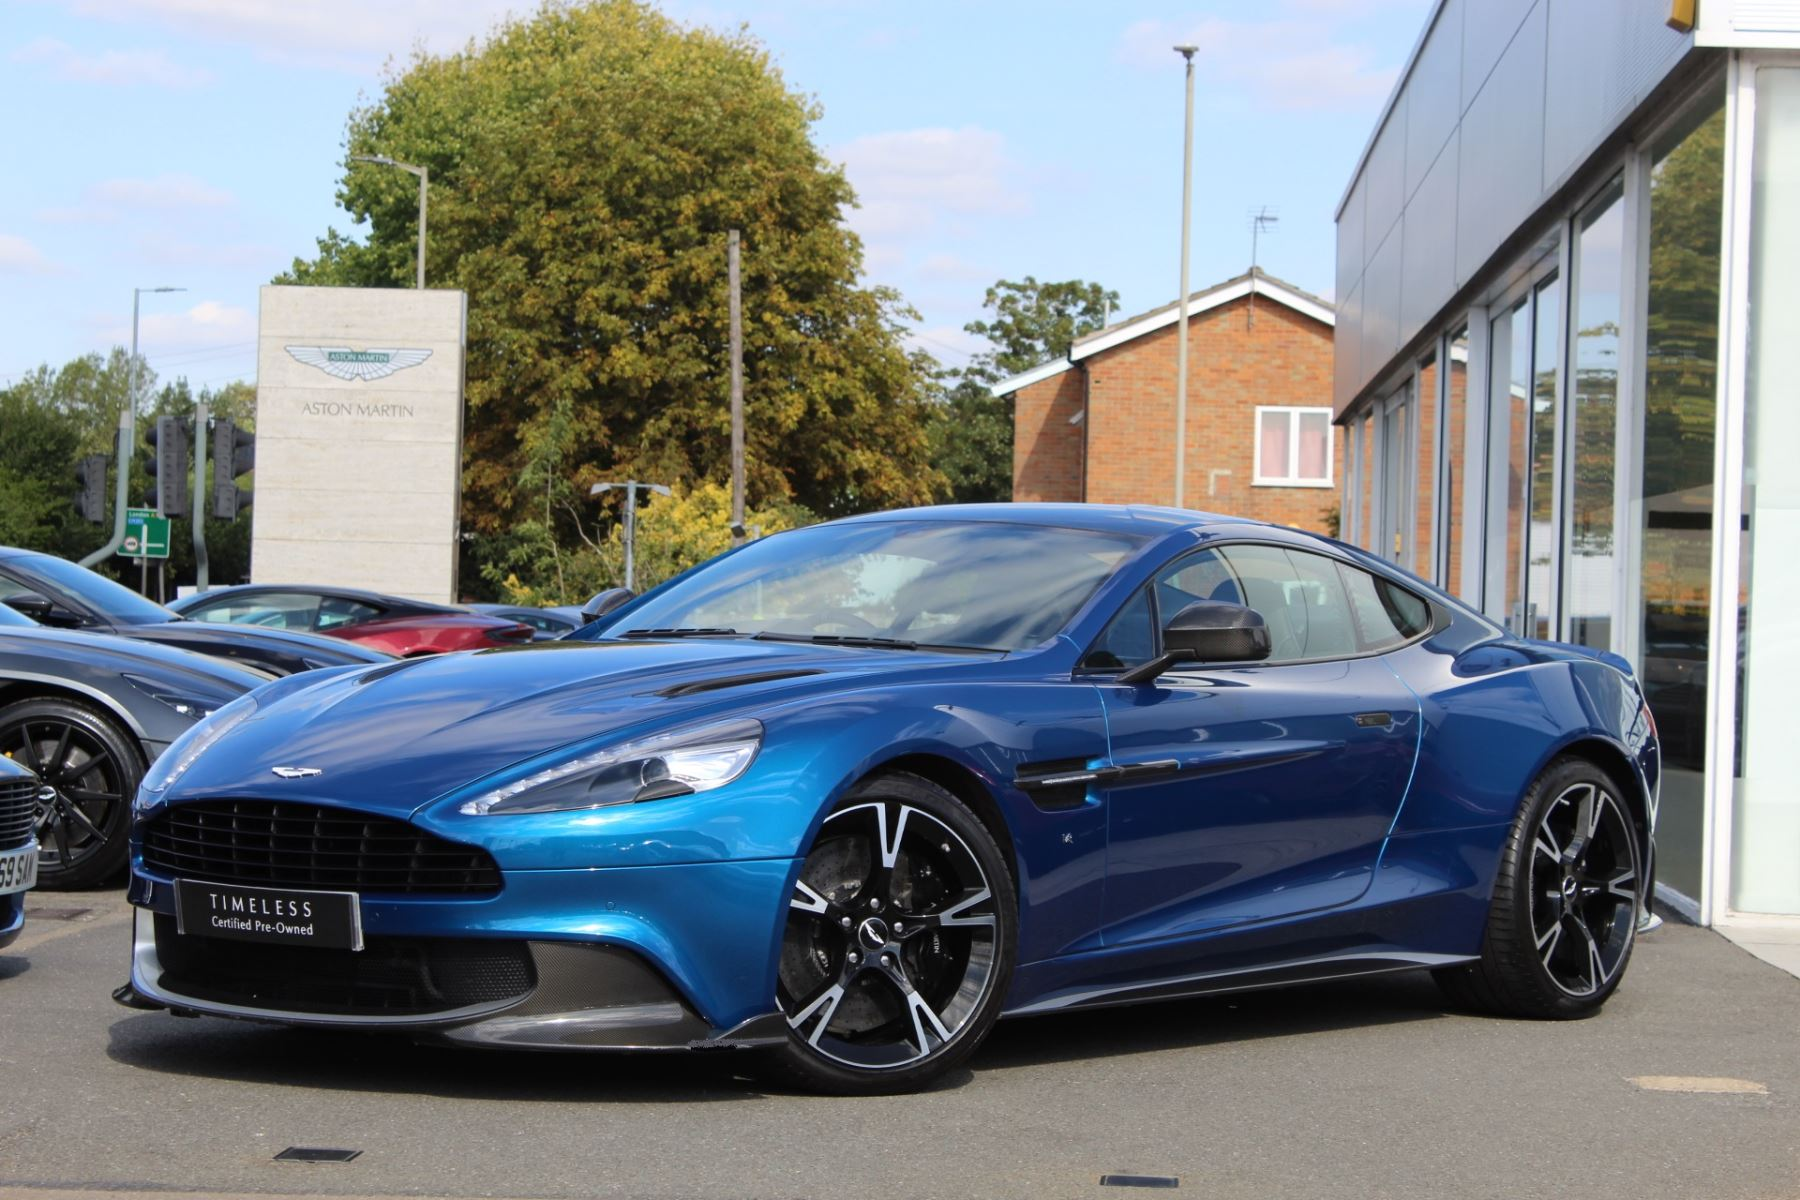 Aston Martin Vanquish V12 [595] S 2+2 2dr Touchtronic 5.9 Automatic 3 door Coupe (2018)